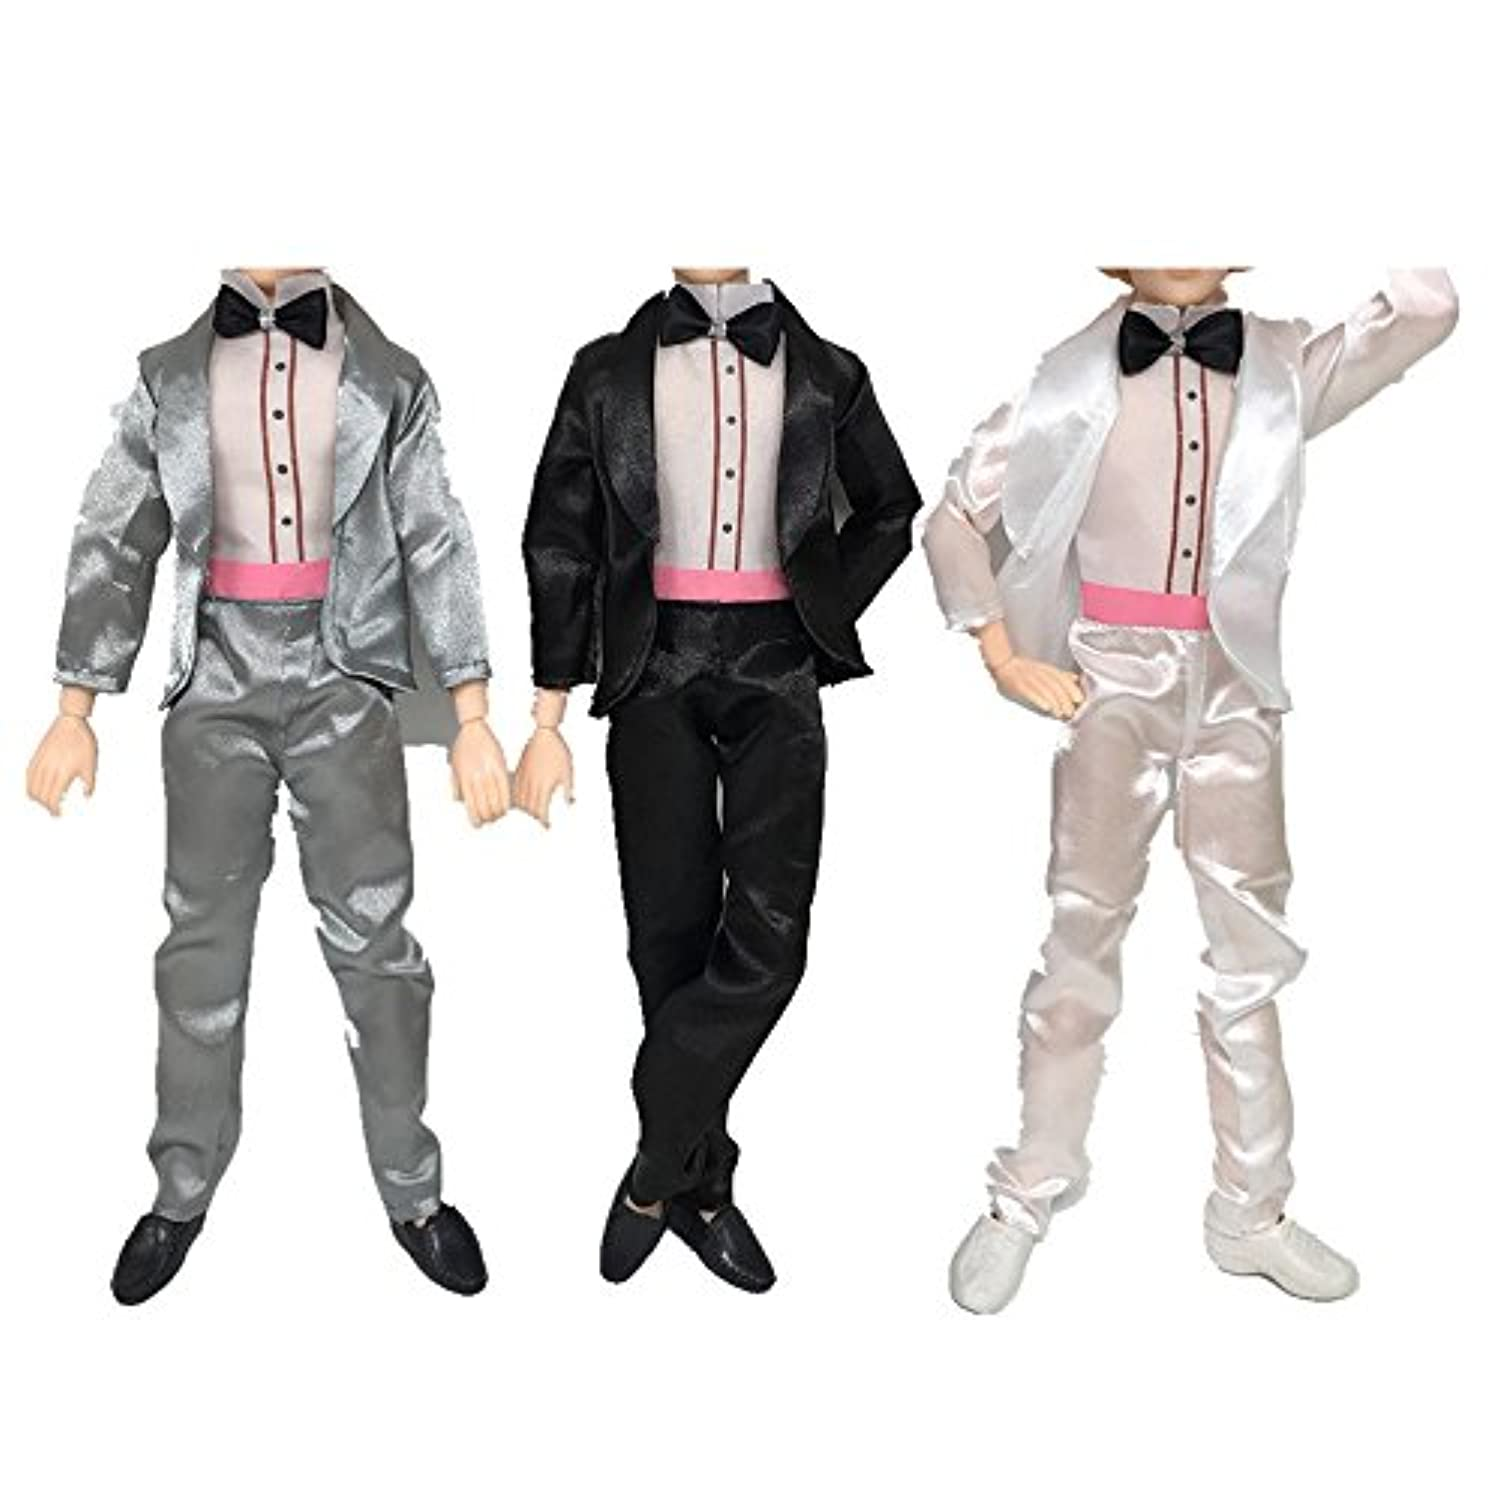 3?Sets Assorted Colors人形おもちゃウェディング服Groom Suits for Kenバービー人形キッズ誕生日クリスマスギフト